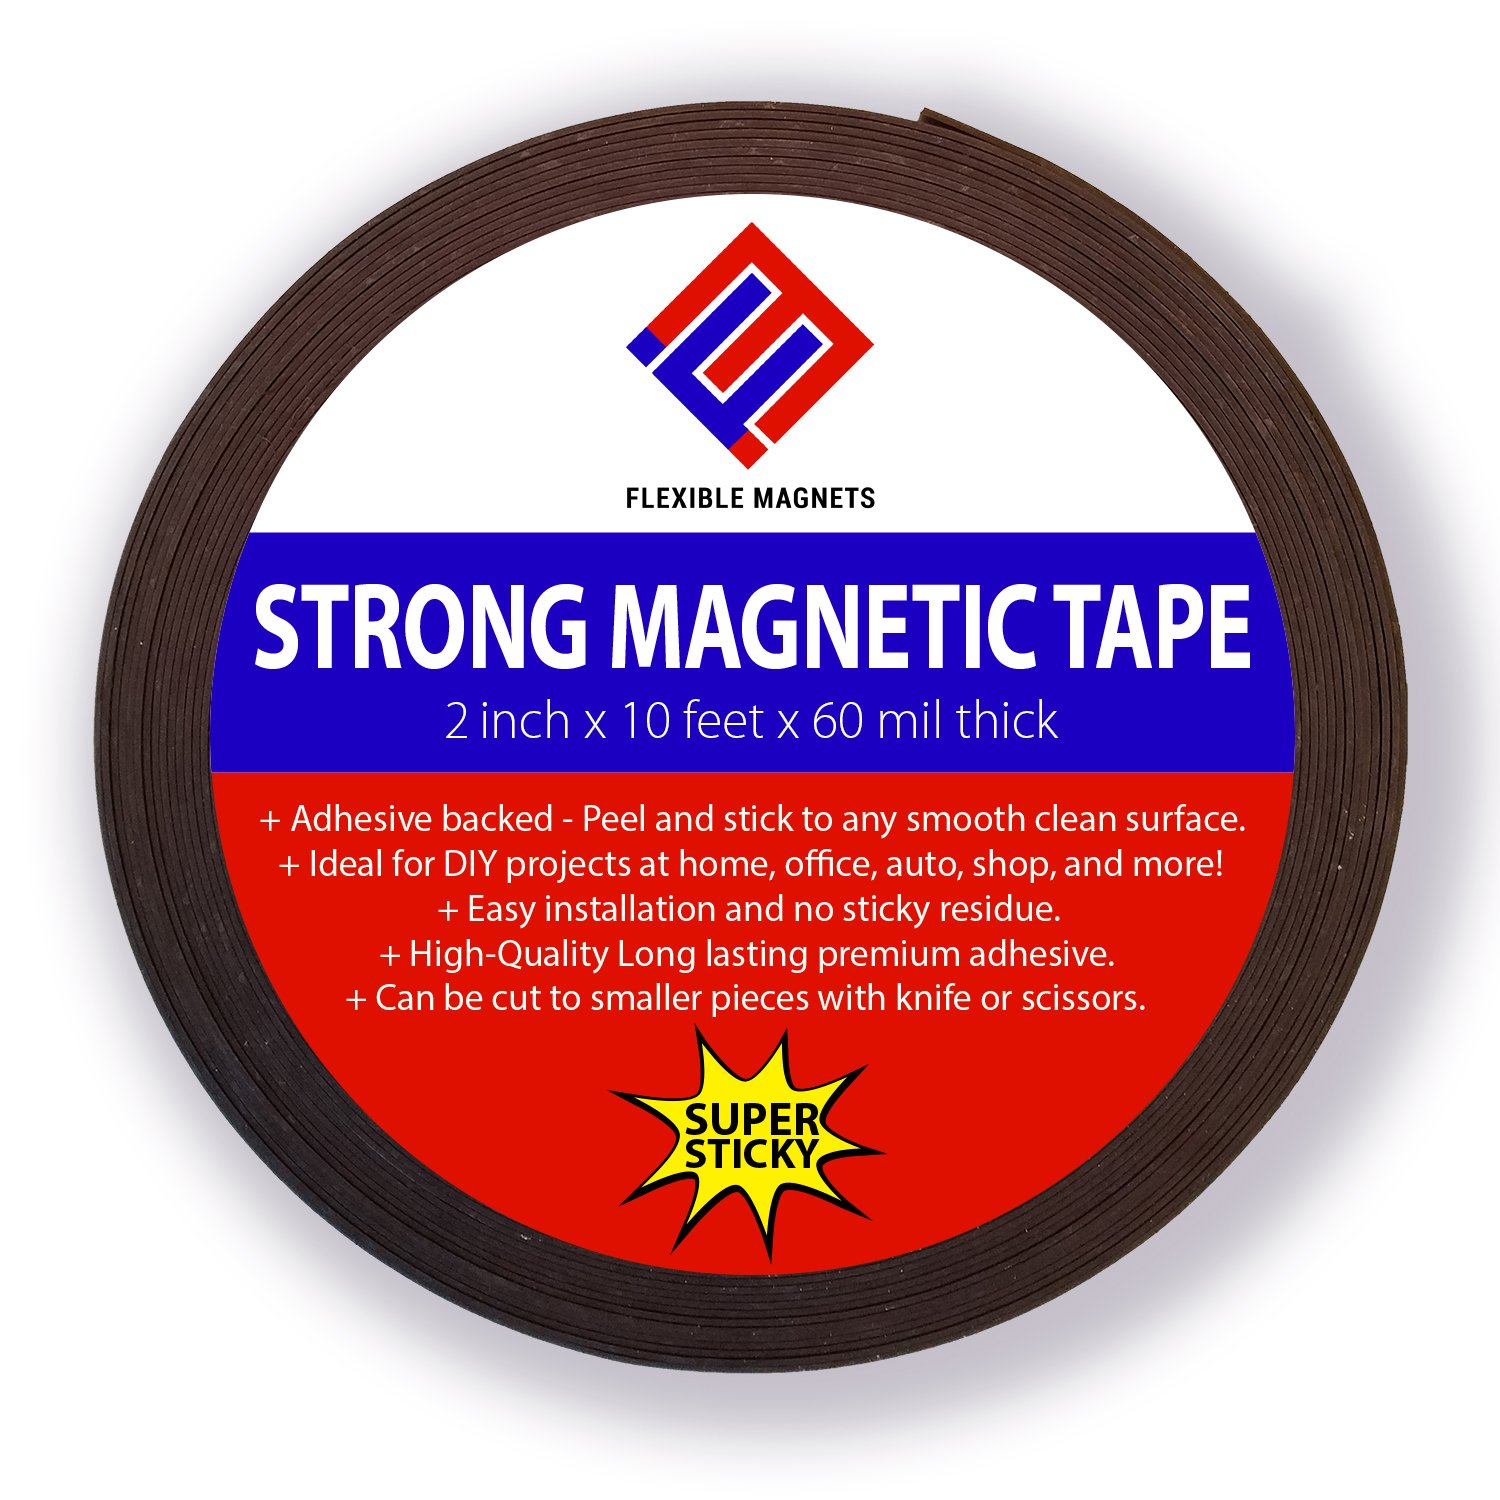 Adhesive Magnetic Strip - Flexible Magnet Tape. 2-inch x 10-feet x 1/16'' thick - VERY STRONG!